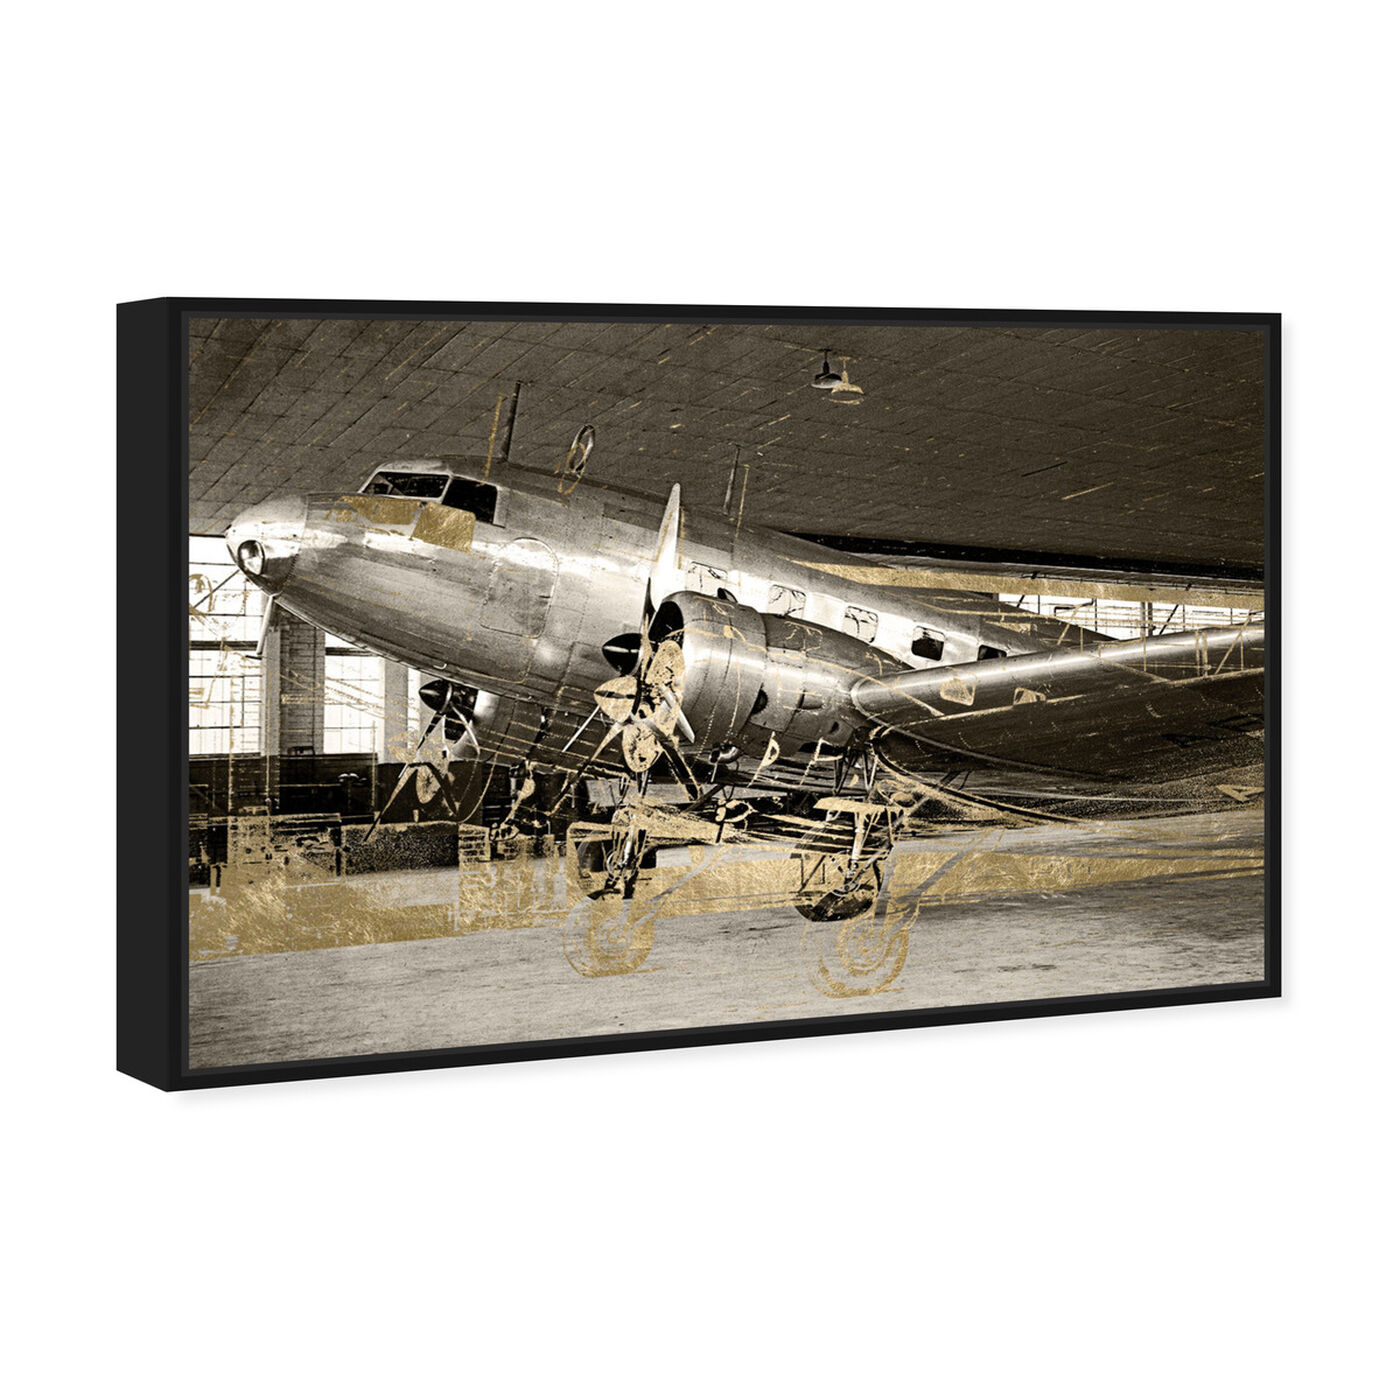 Angled view of Aviation featuring transportation and airplanes art.